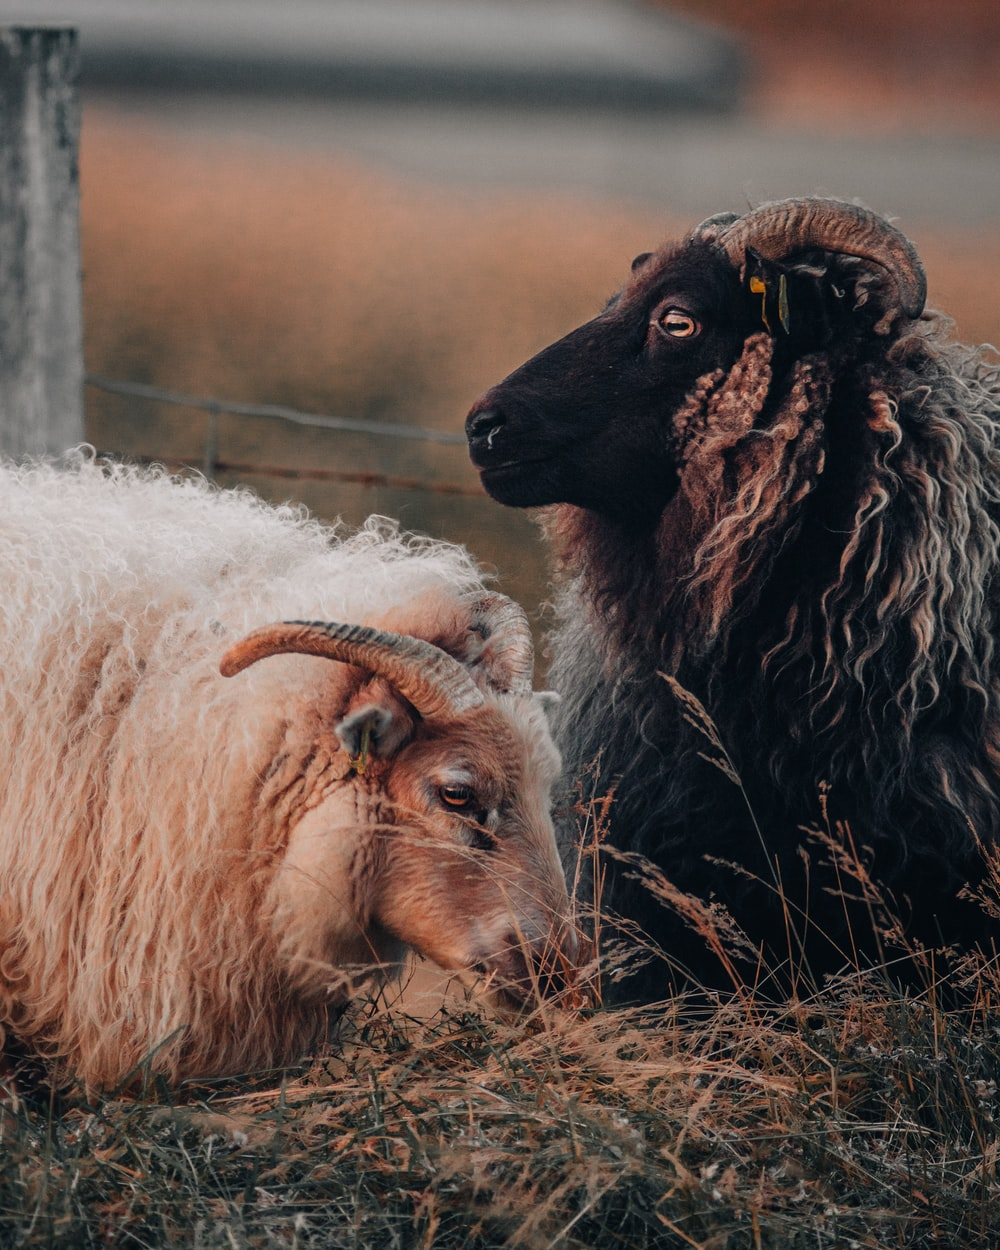 white and black sheep on brown grass field during daytime